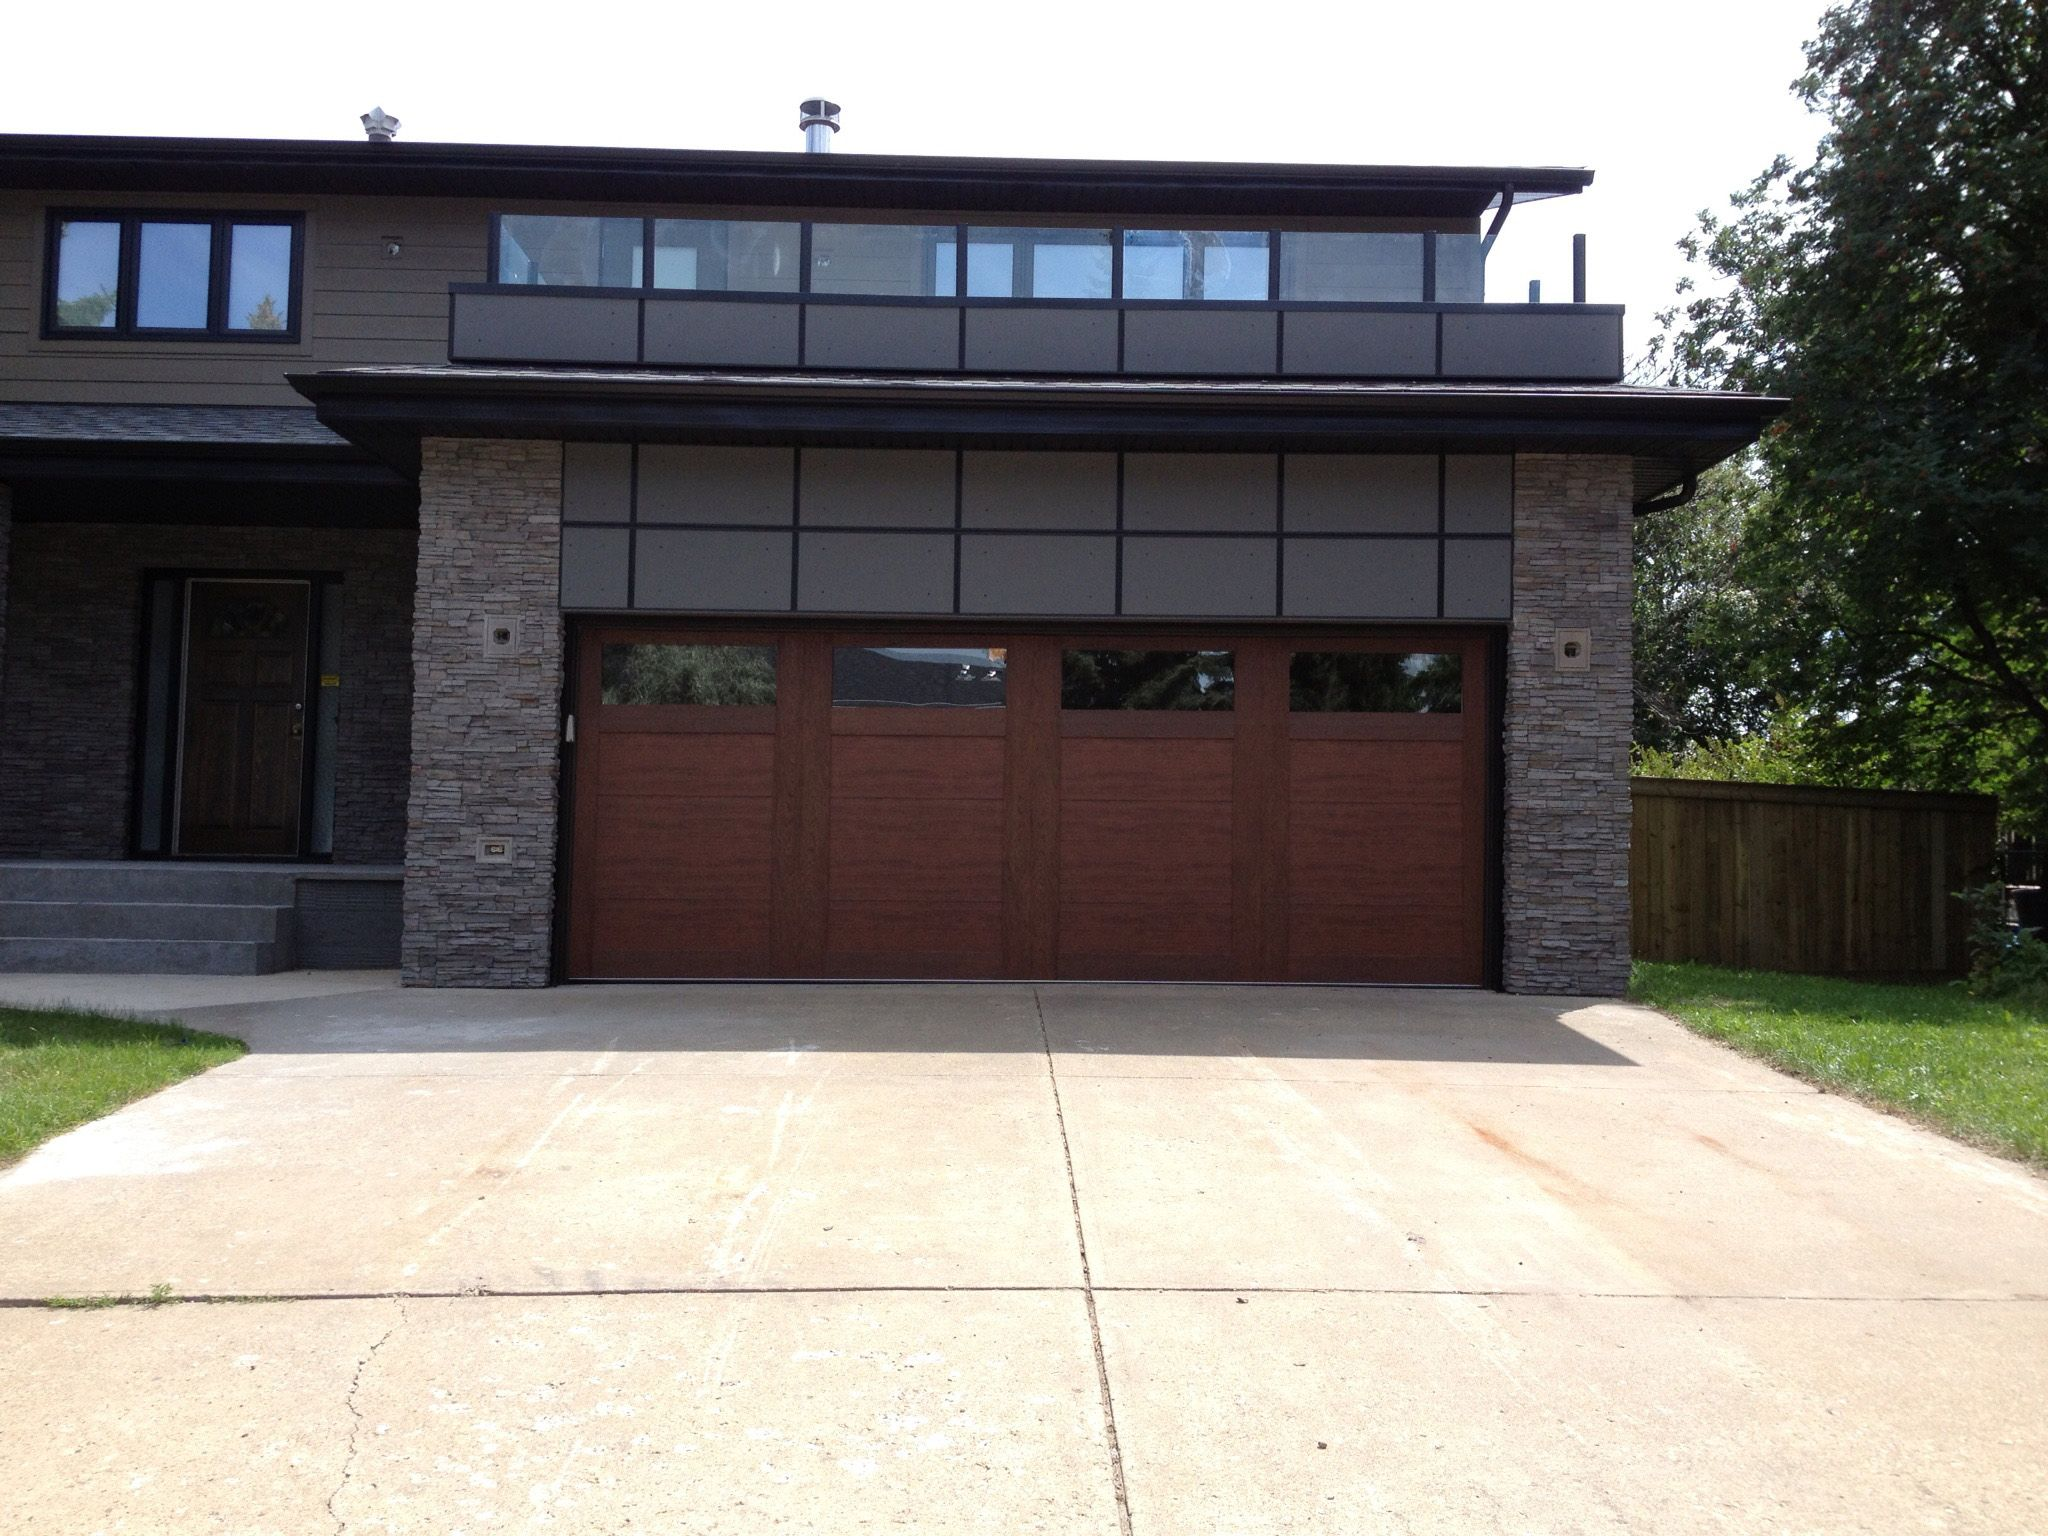 Front entry doors amp double doors in edmonton cambridge window - Clopay Garage Doors On Carriage House Garage Doors Carriage House Garage And Brick Exteriors